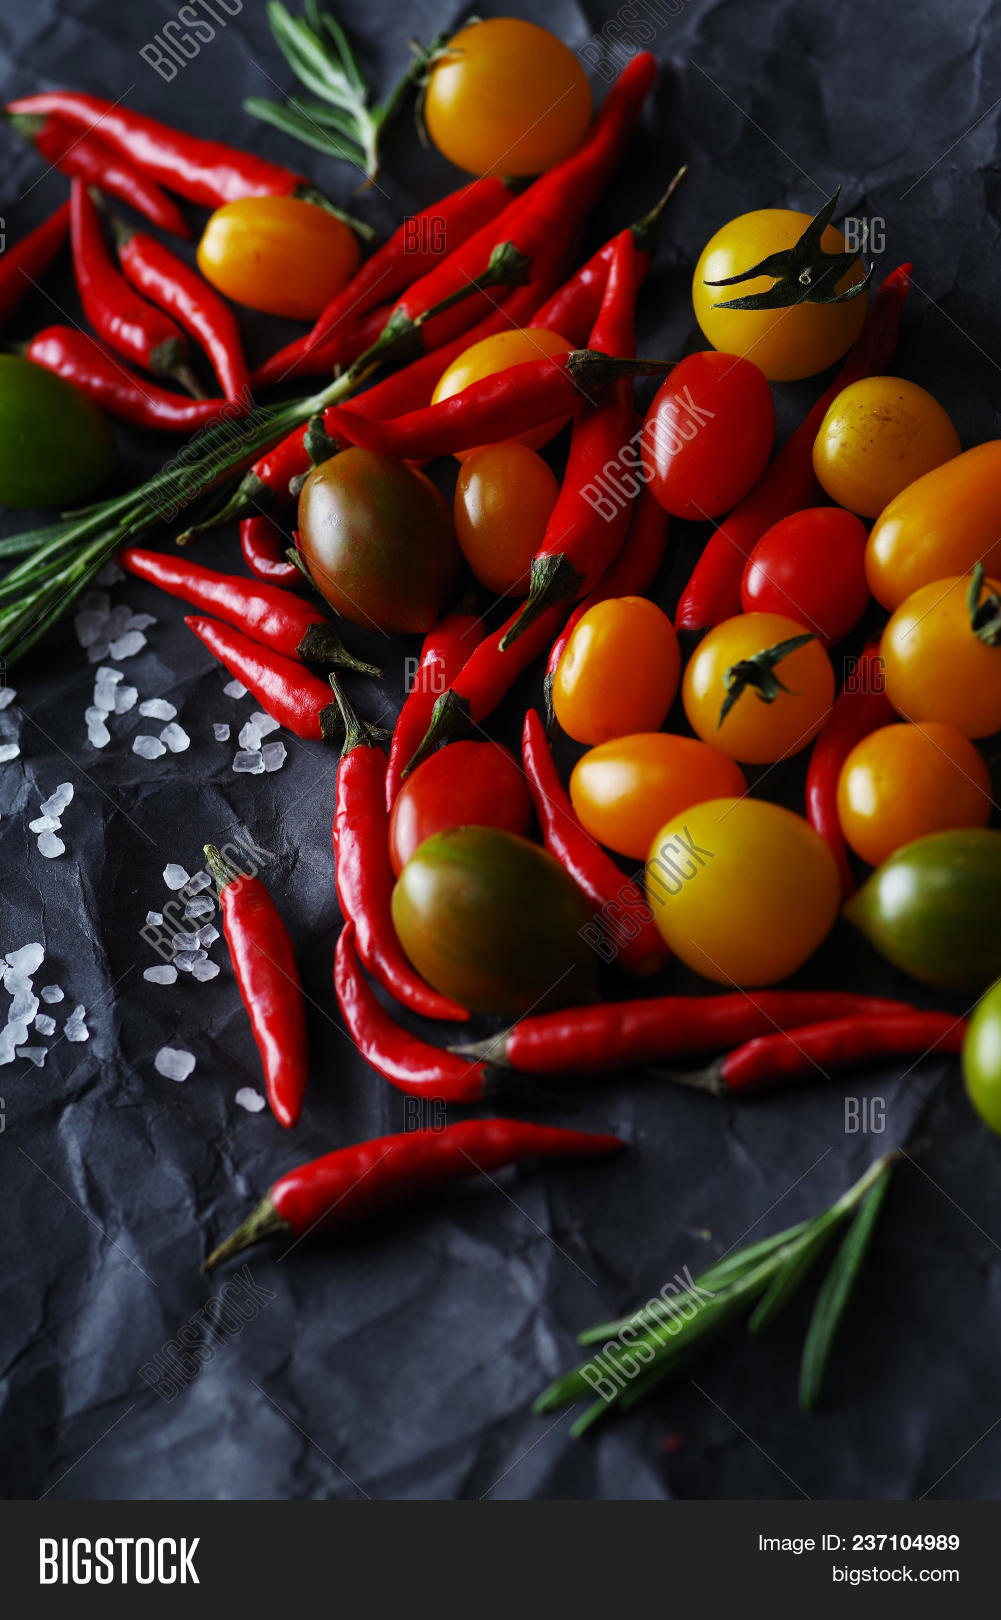 cherry,chili,cooking,diet,food,freshness,gourmet,green,group,healthy,ingredient,lifestyle,organic,pepper,raw,red,seasoning,table,tomato,vegetarian,vitamin,yellow